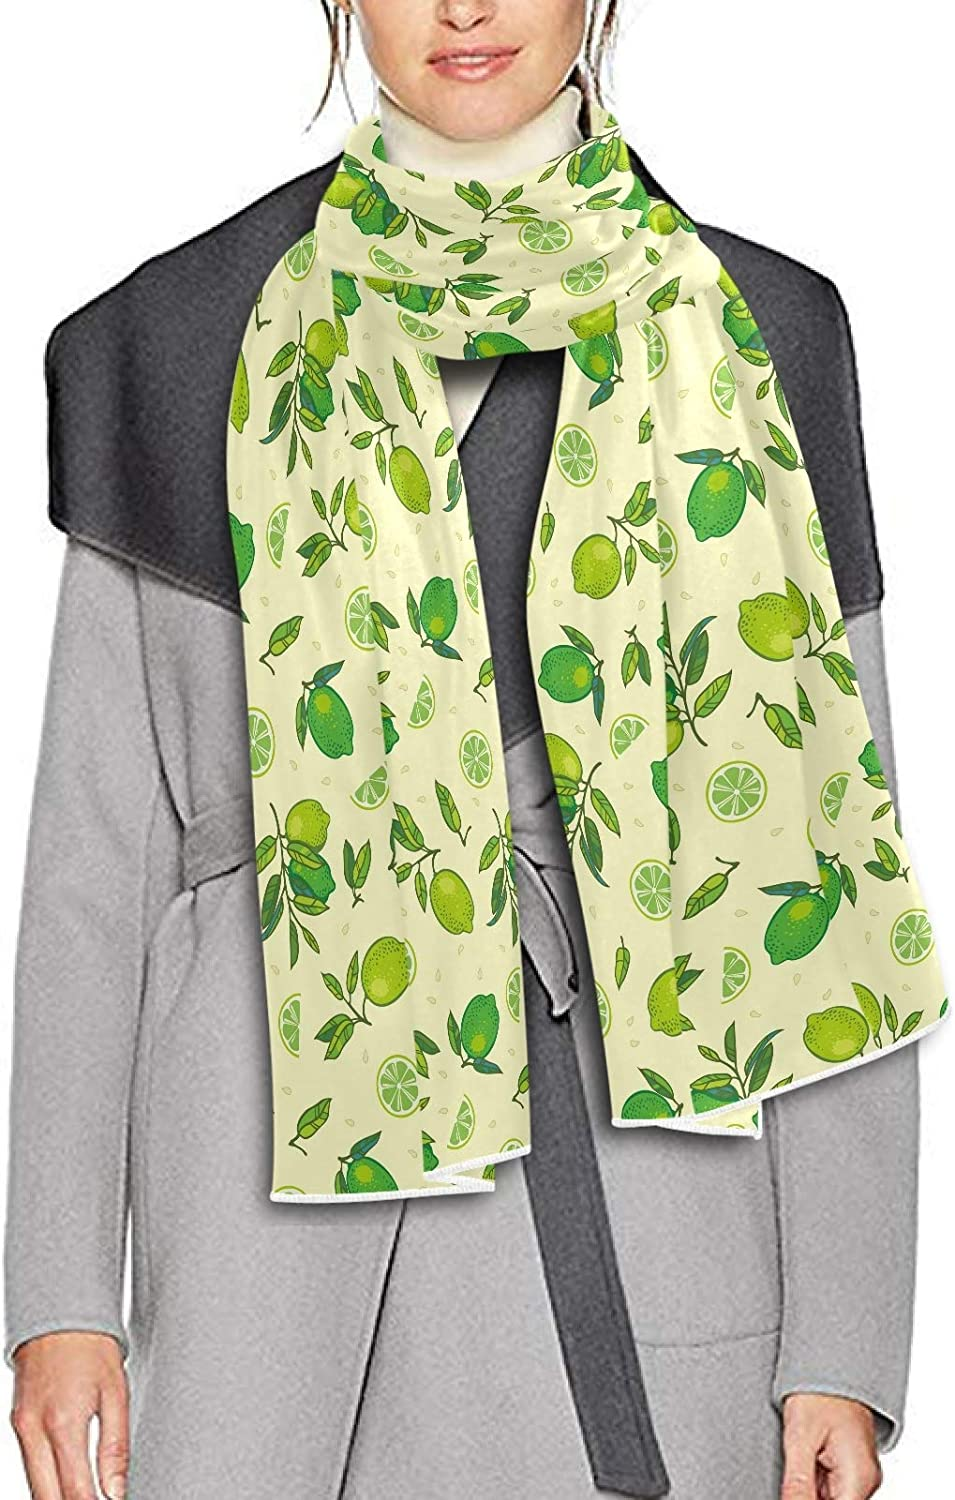 Scarf for Women and Men Fruits Pears Green Shawl Wraps Blanket Scarf Thick Soft Winter Oversized Scarf Lightweight